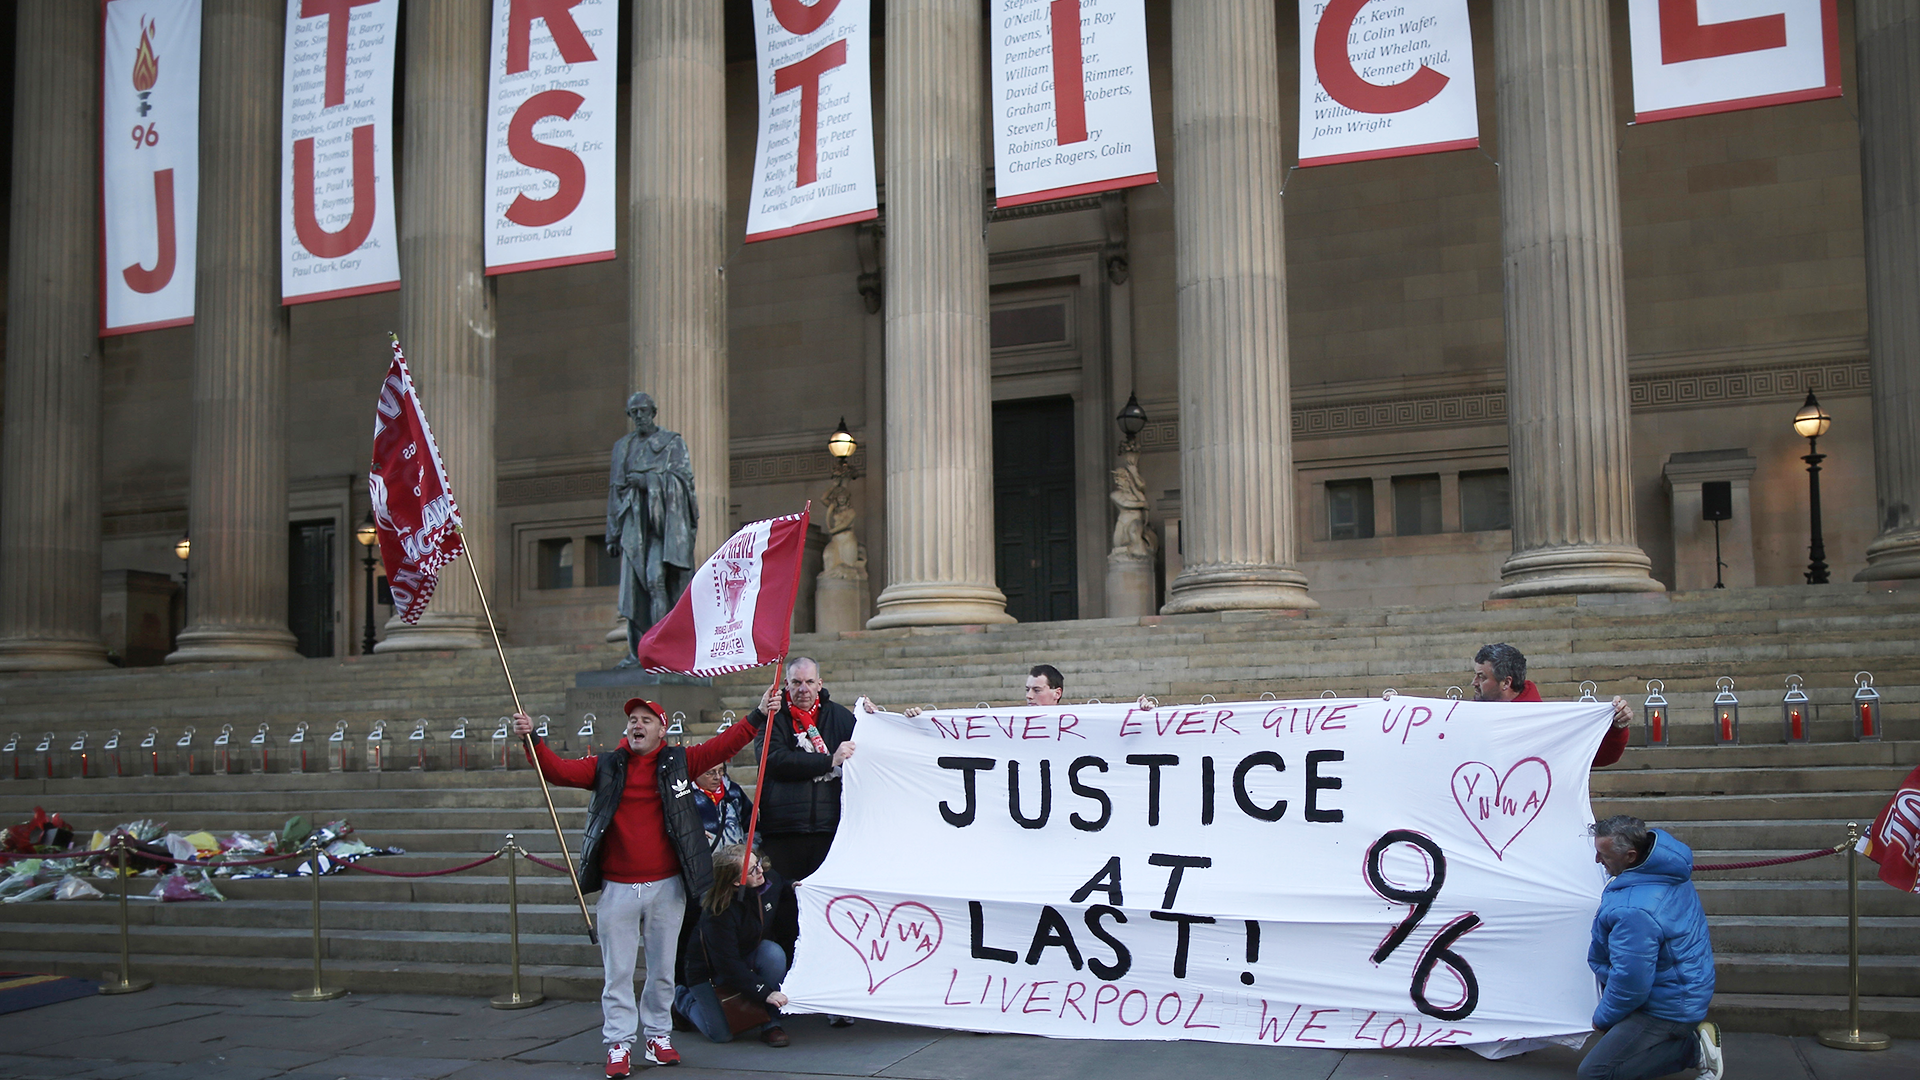 Liverpool justice for 96